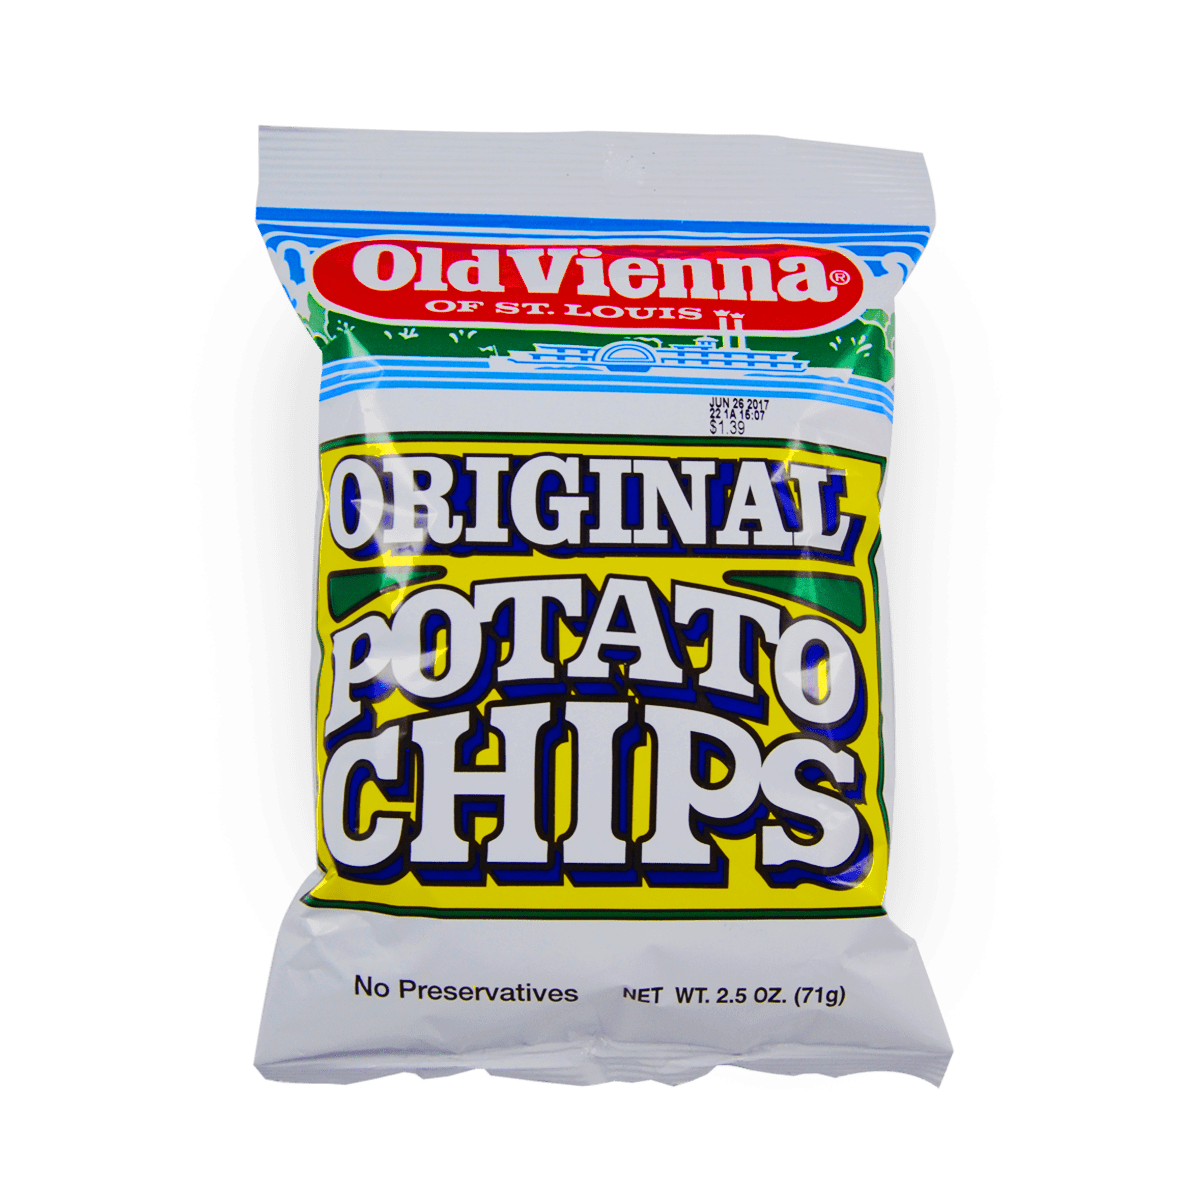 Old Vienna Original Potato Chips